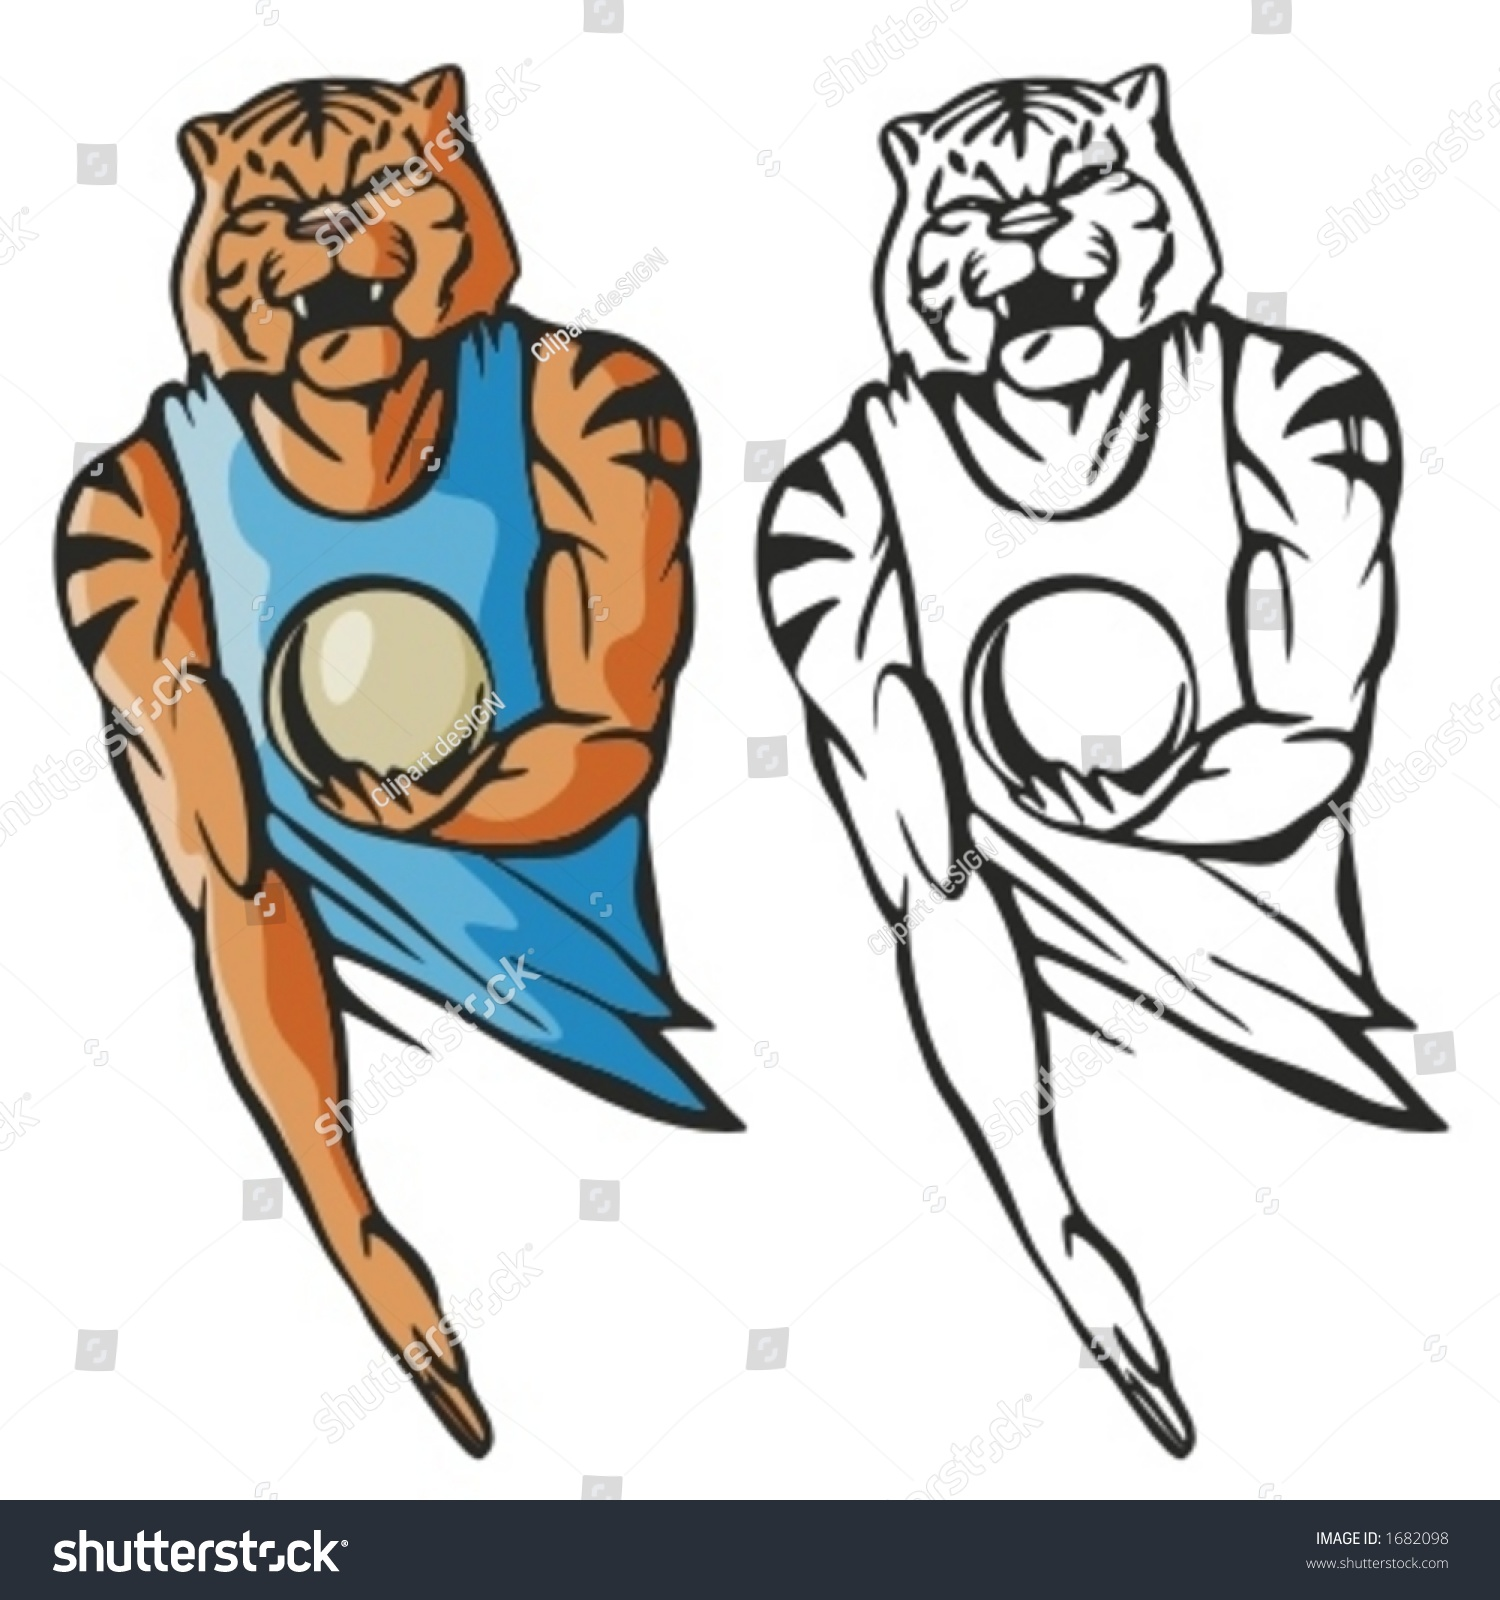 T shirt design volleyball - Tiger Volleyball Mascot Great For T Shirt Designs School Mascot Logo And Any